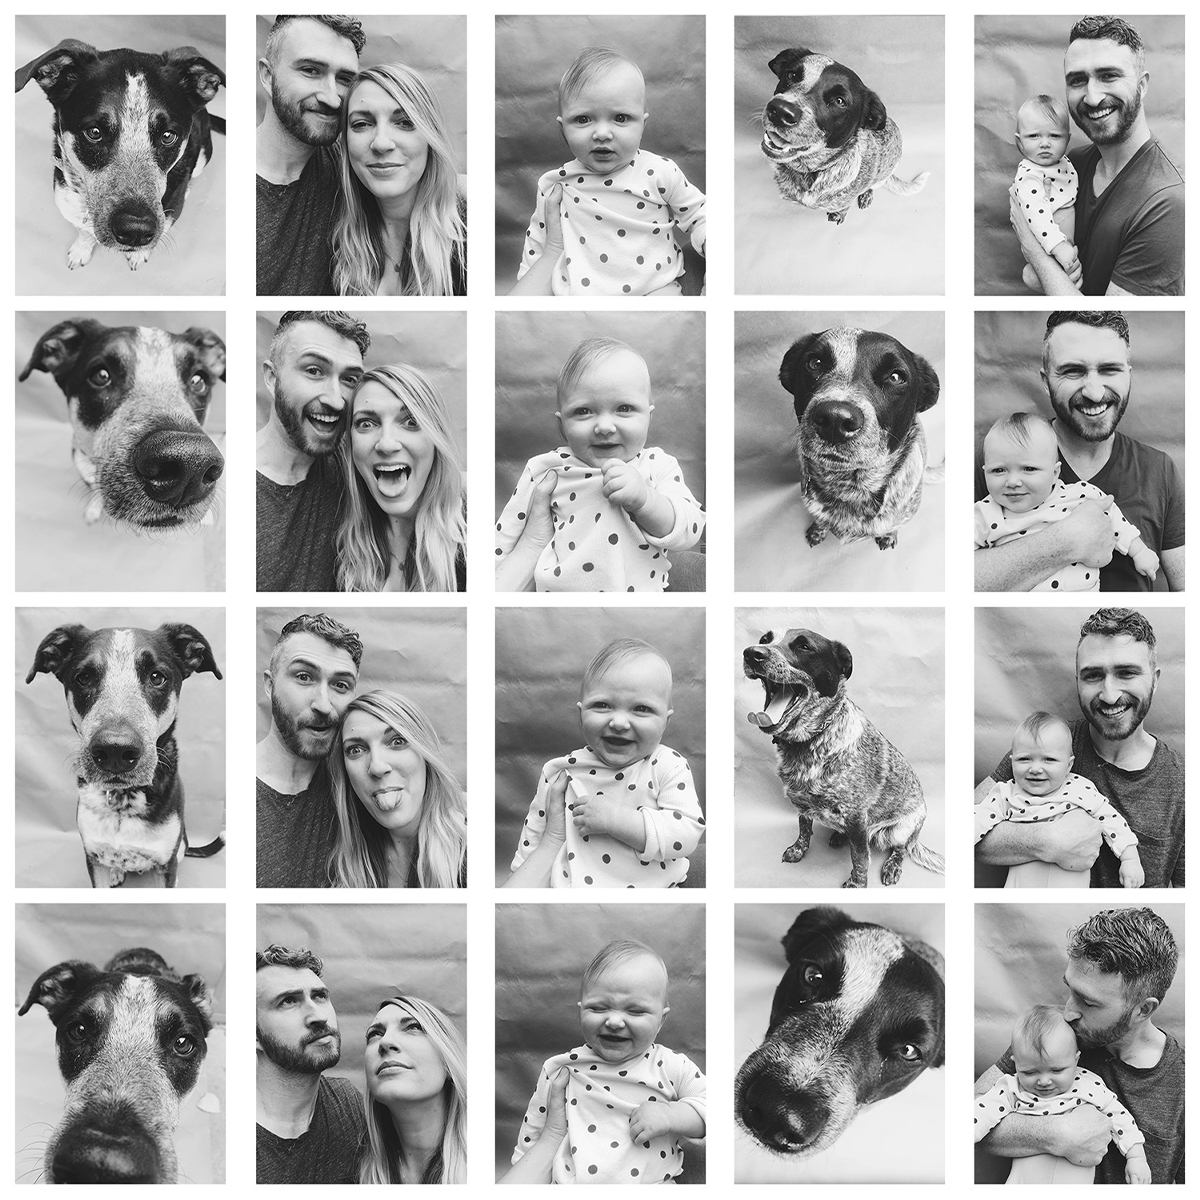 Grid of family, baby, and dog photos